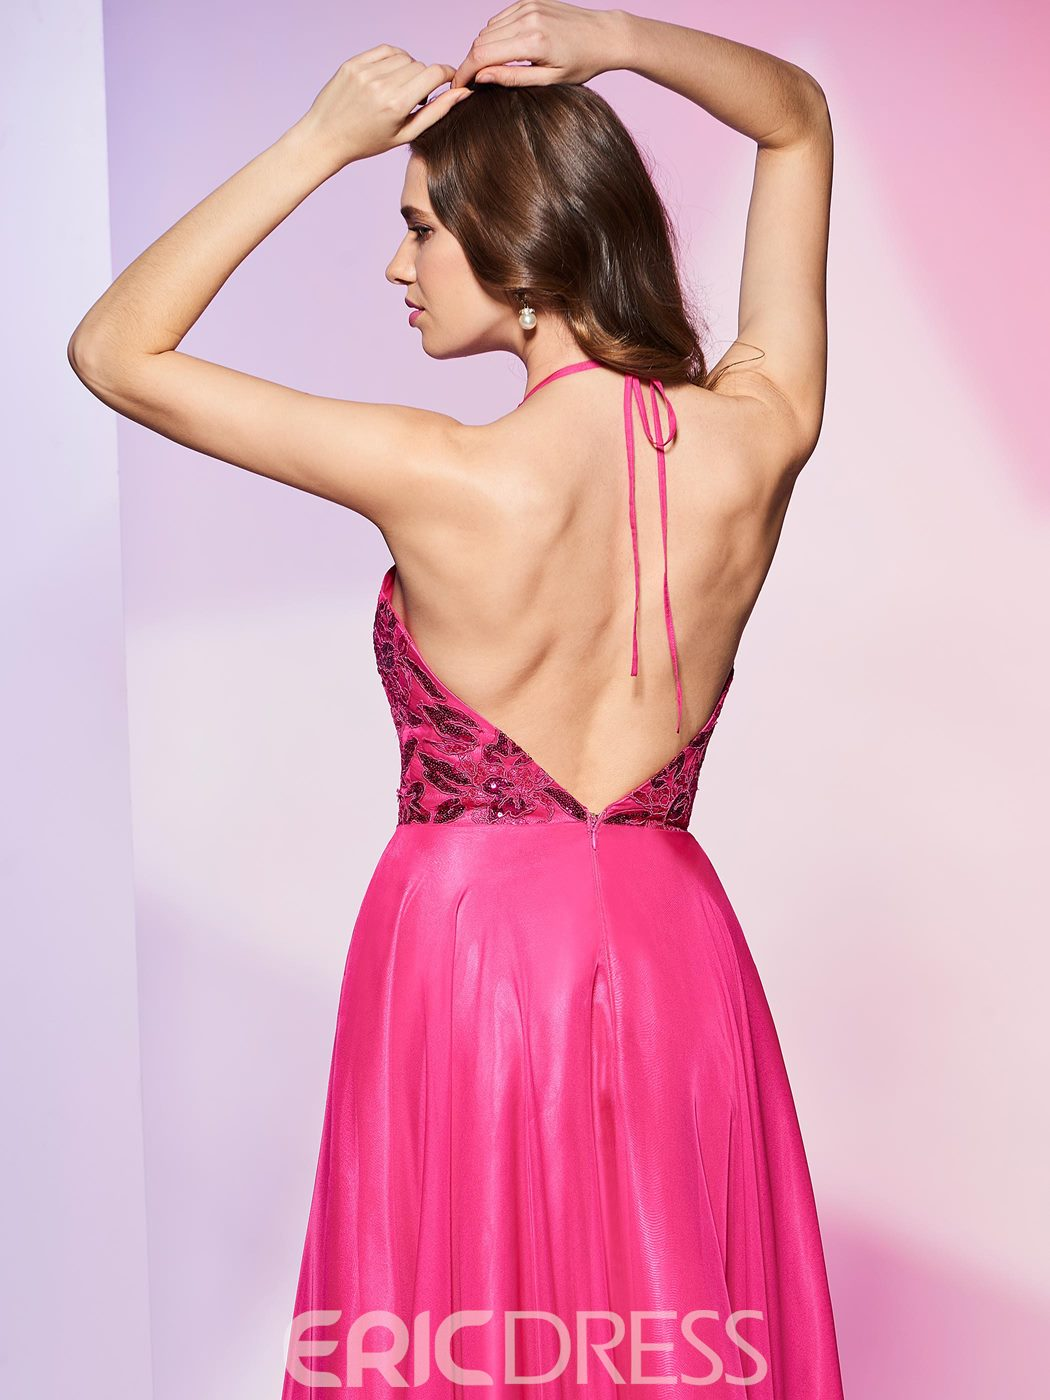 Ericdress Halter A Line Sequin Applique Backless Floor Length Prom Dress